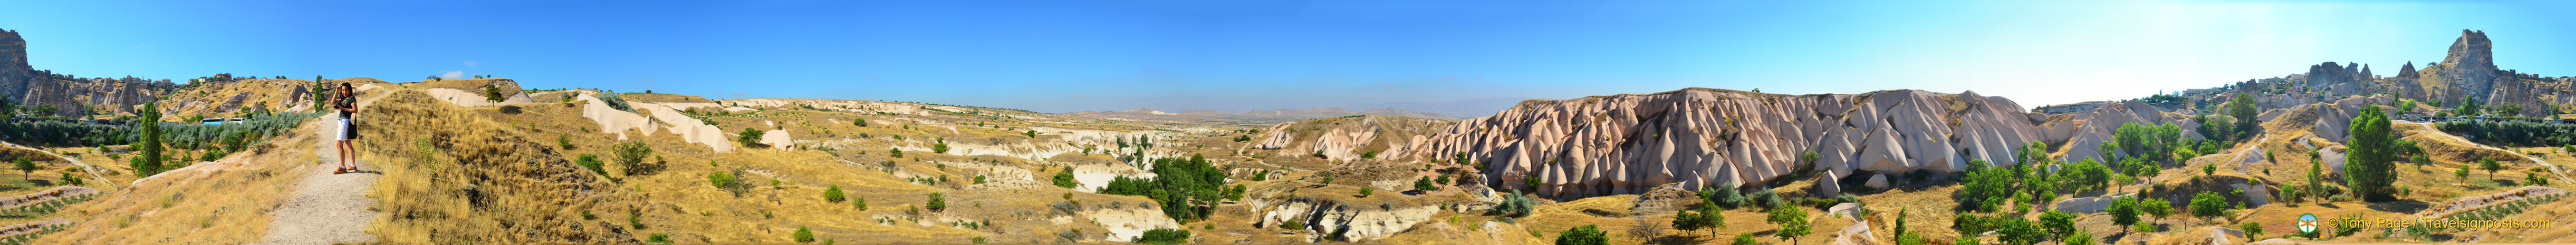 goreme-valley-360-panorama